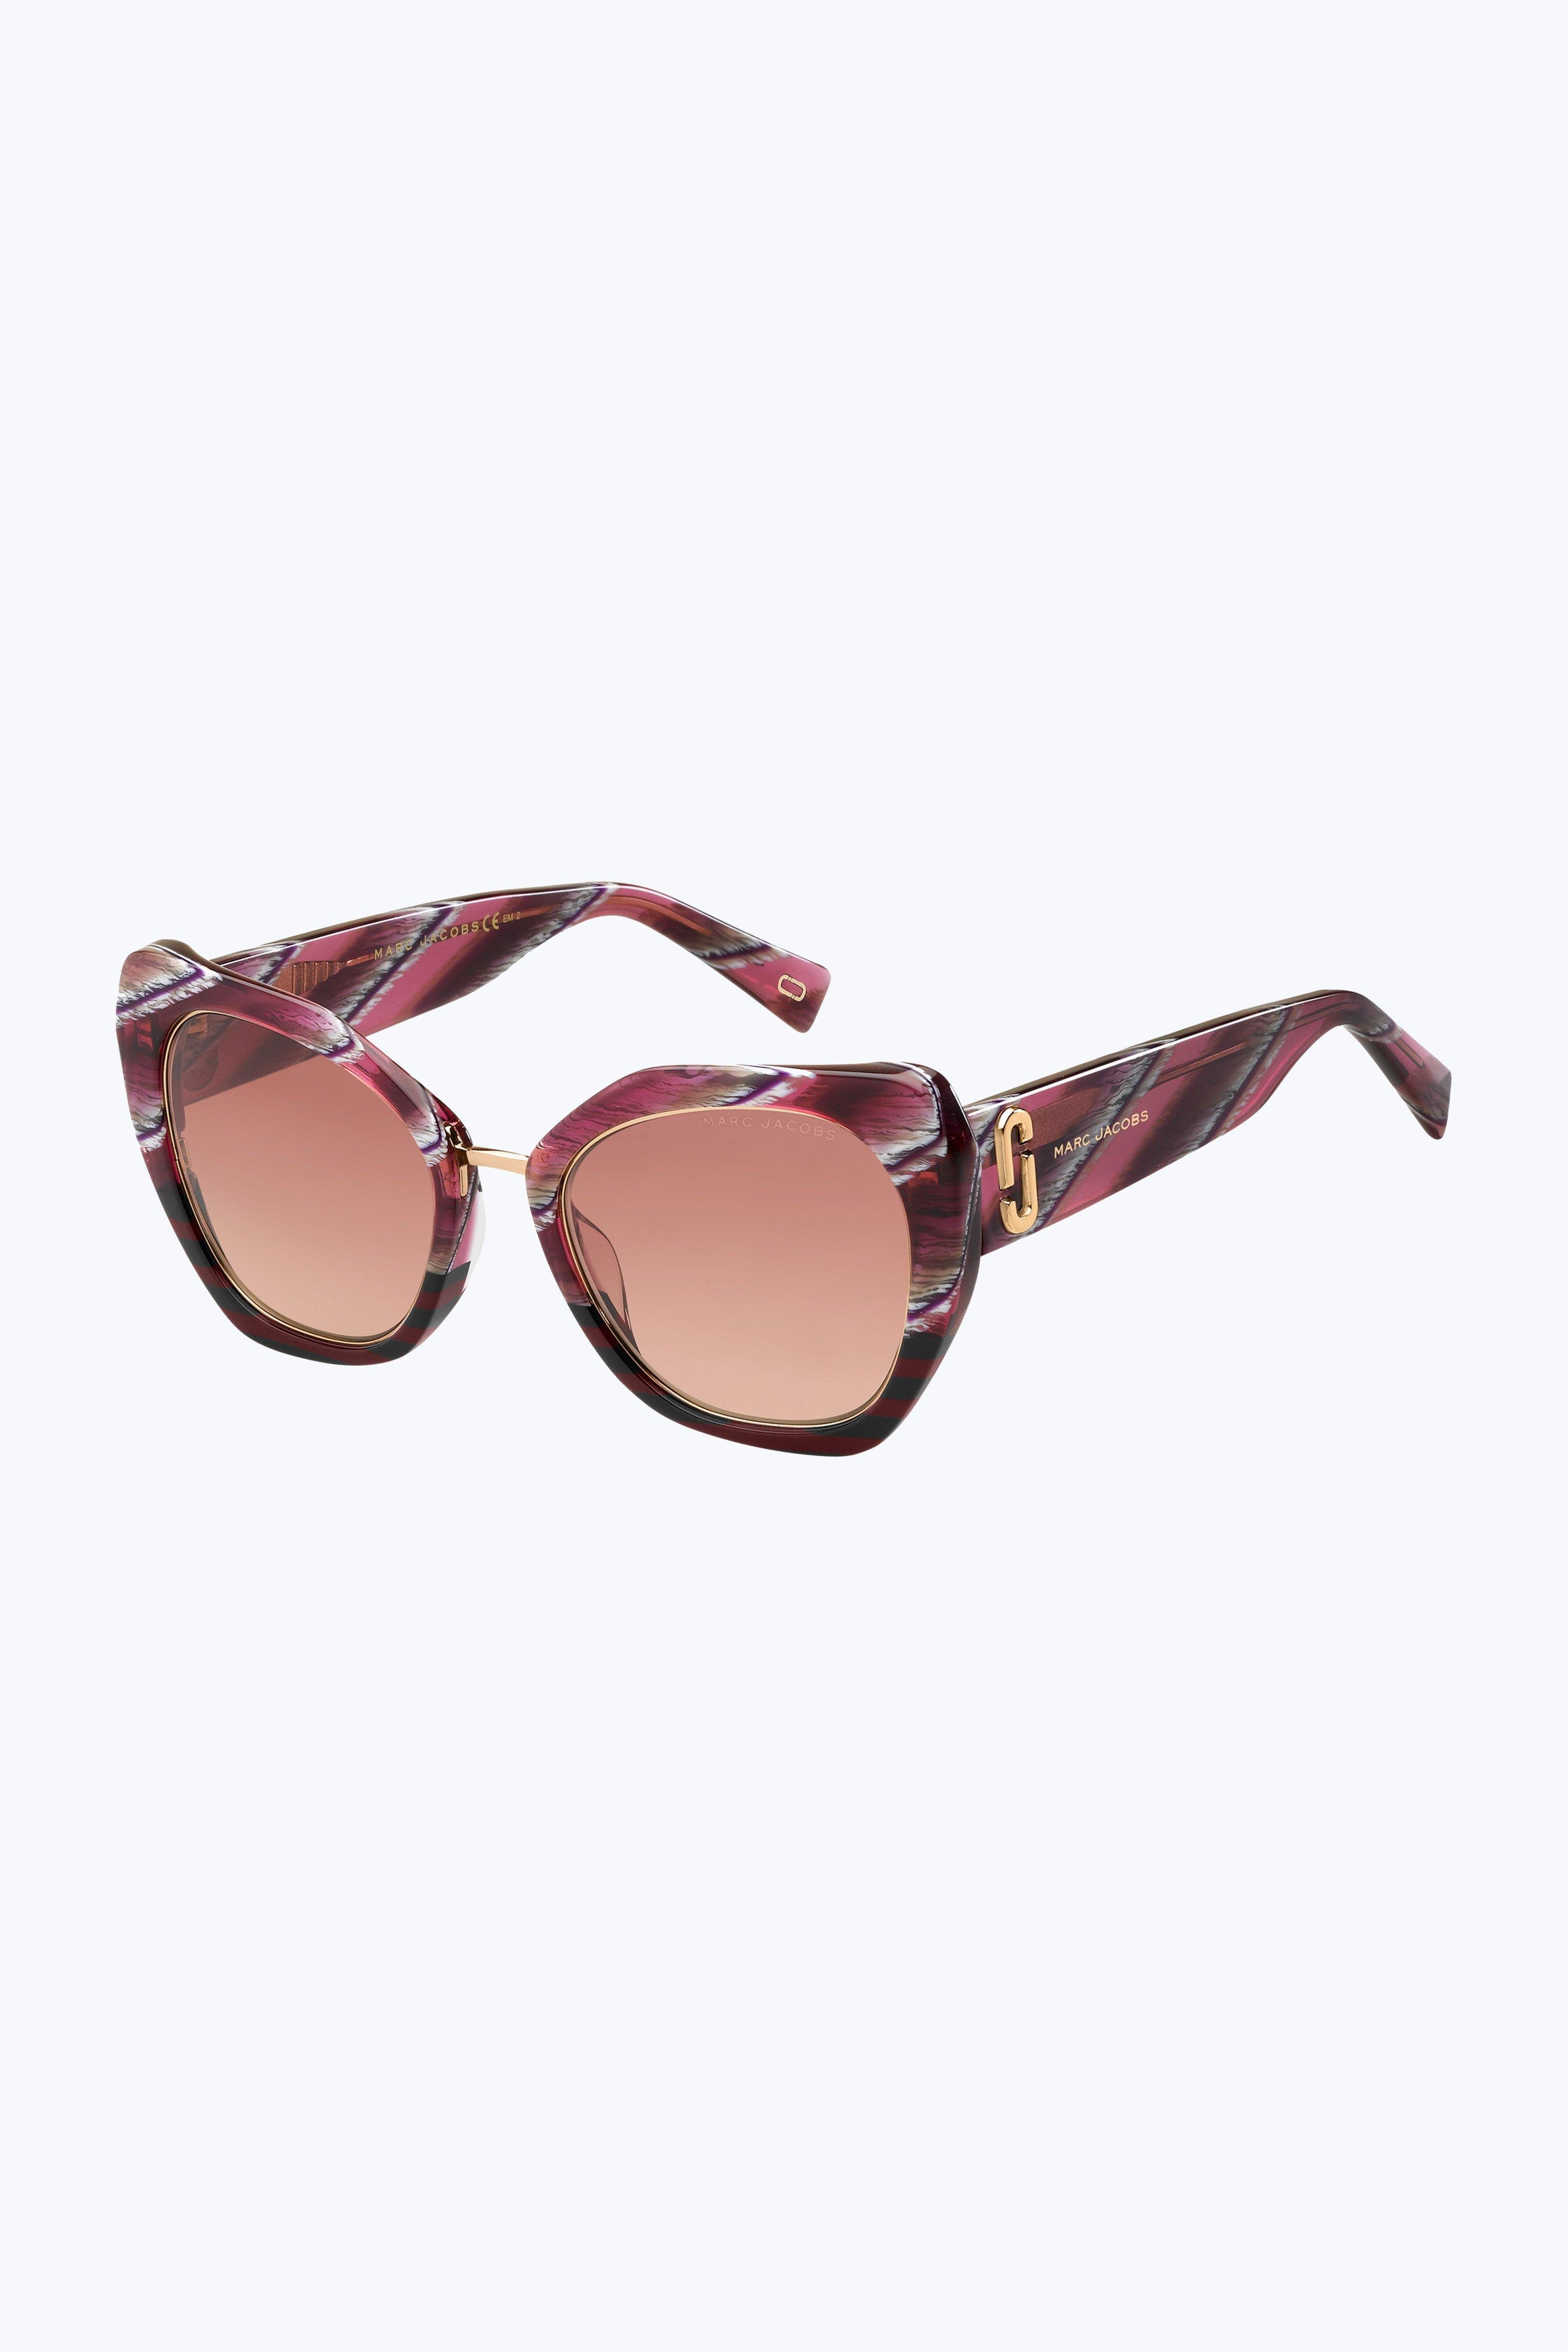 c759c1e4025f Marc Jacobs - Pink Abstracted Cat-eye Sunglasses - Lyst. View fullscreen